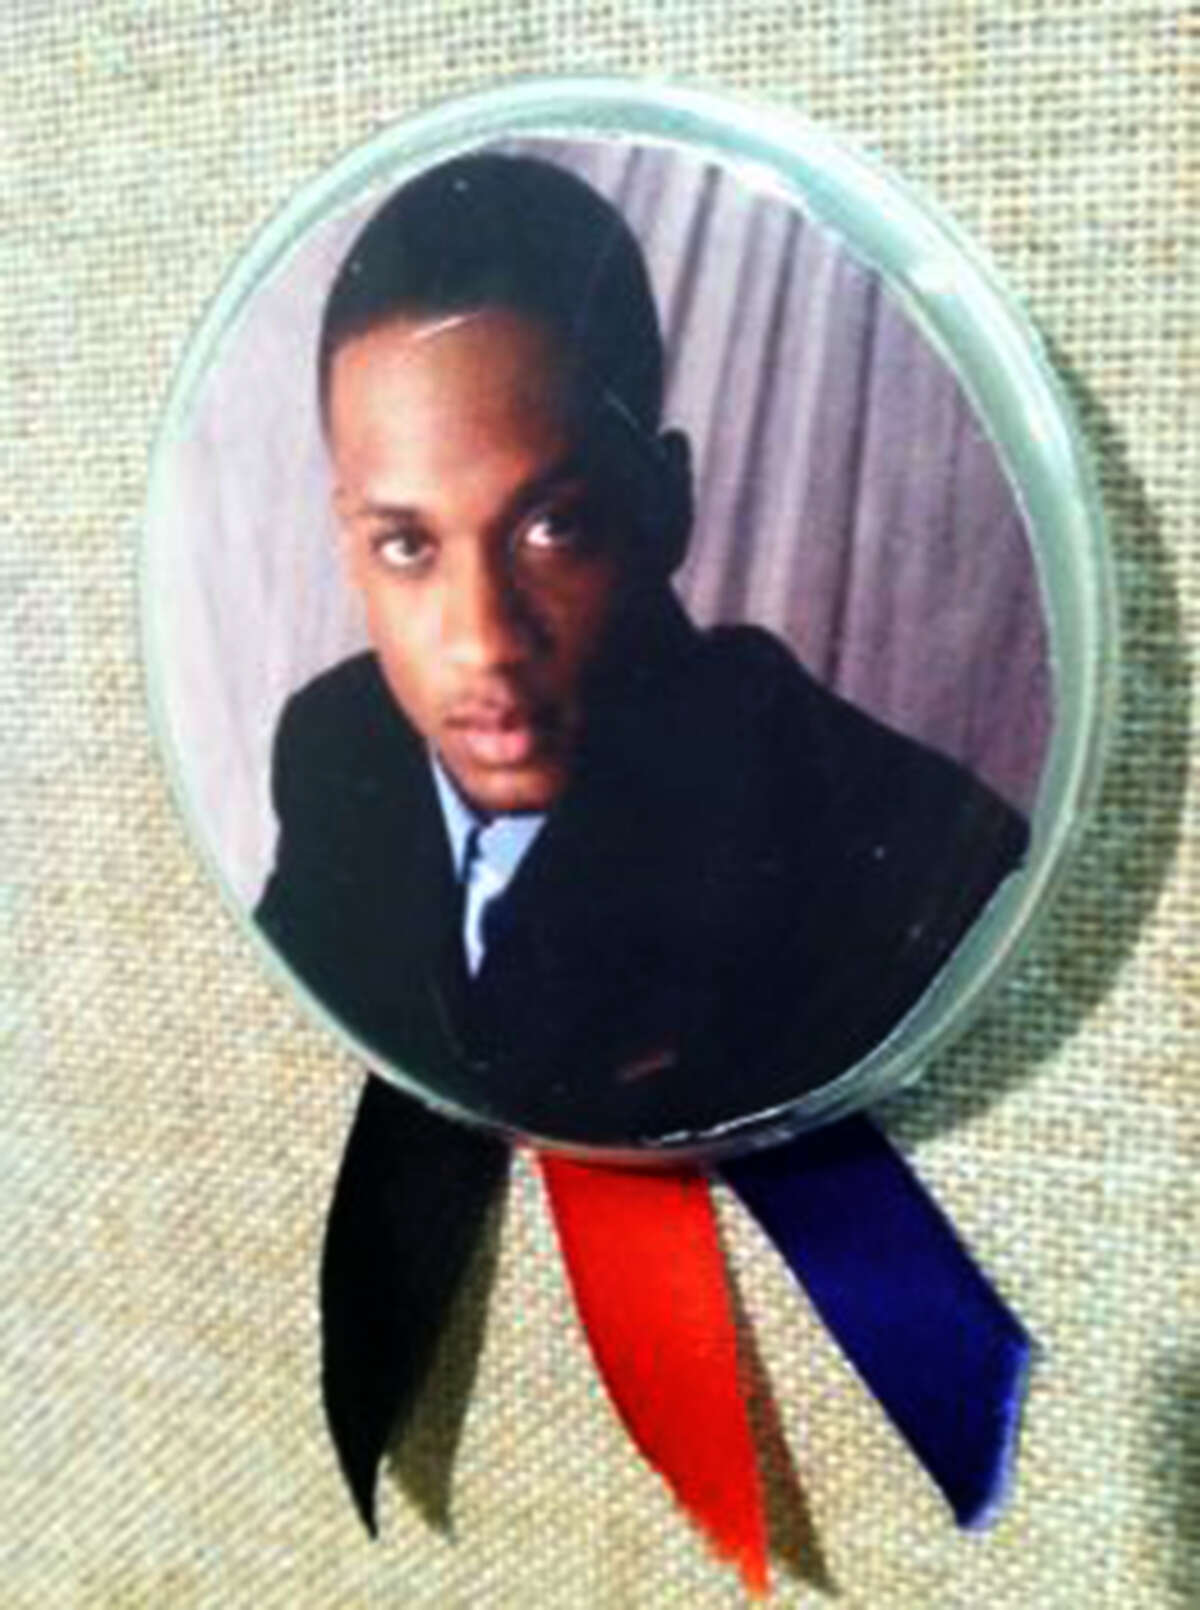 Family and friends of murder victim Samuel Johnson Jr. wore pins depicting his image in court on Monday, April 23, 2012, as ex-girlfriend Vanessa Cameron was sentenced to 70 years in prison for his murder.